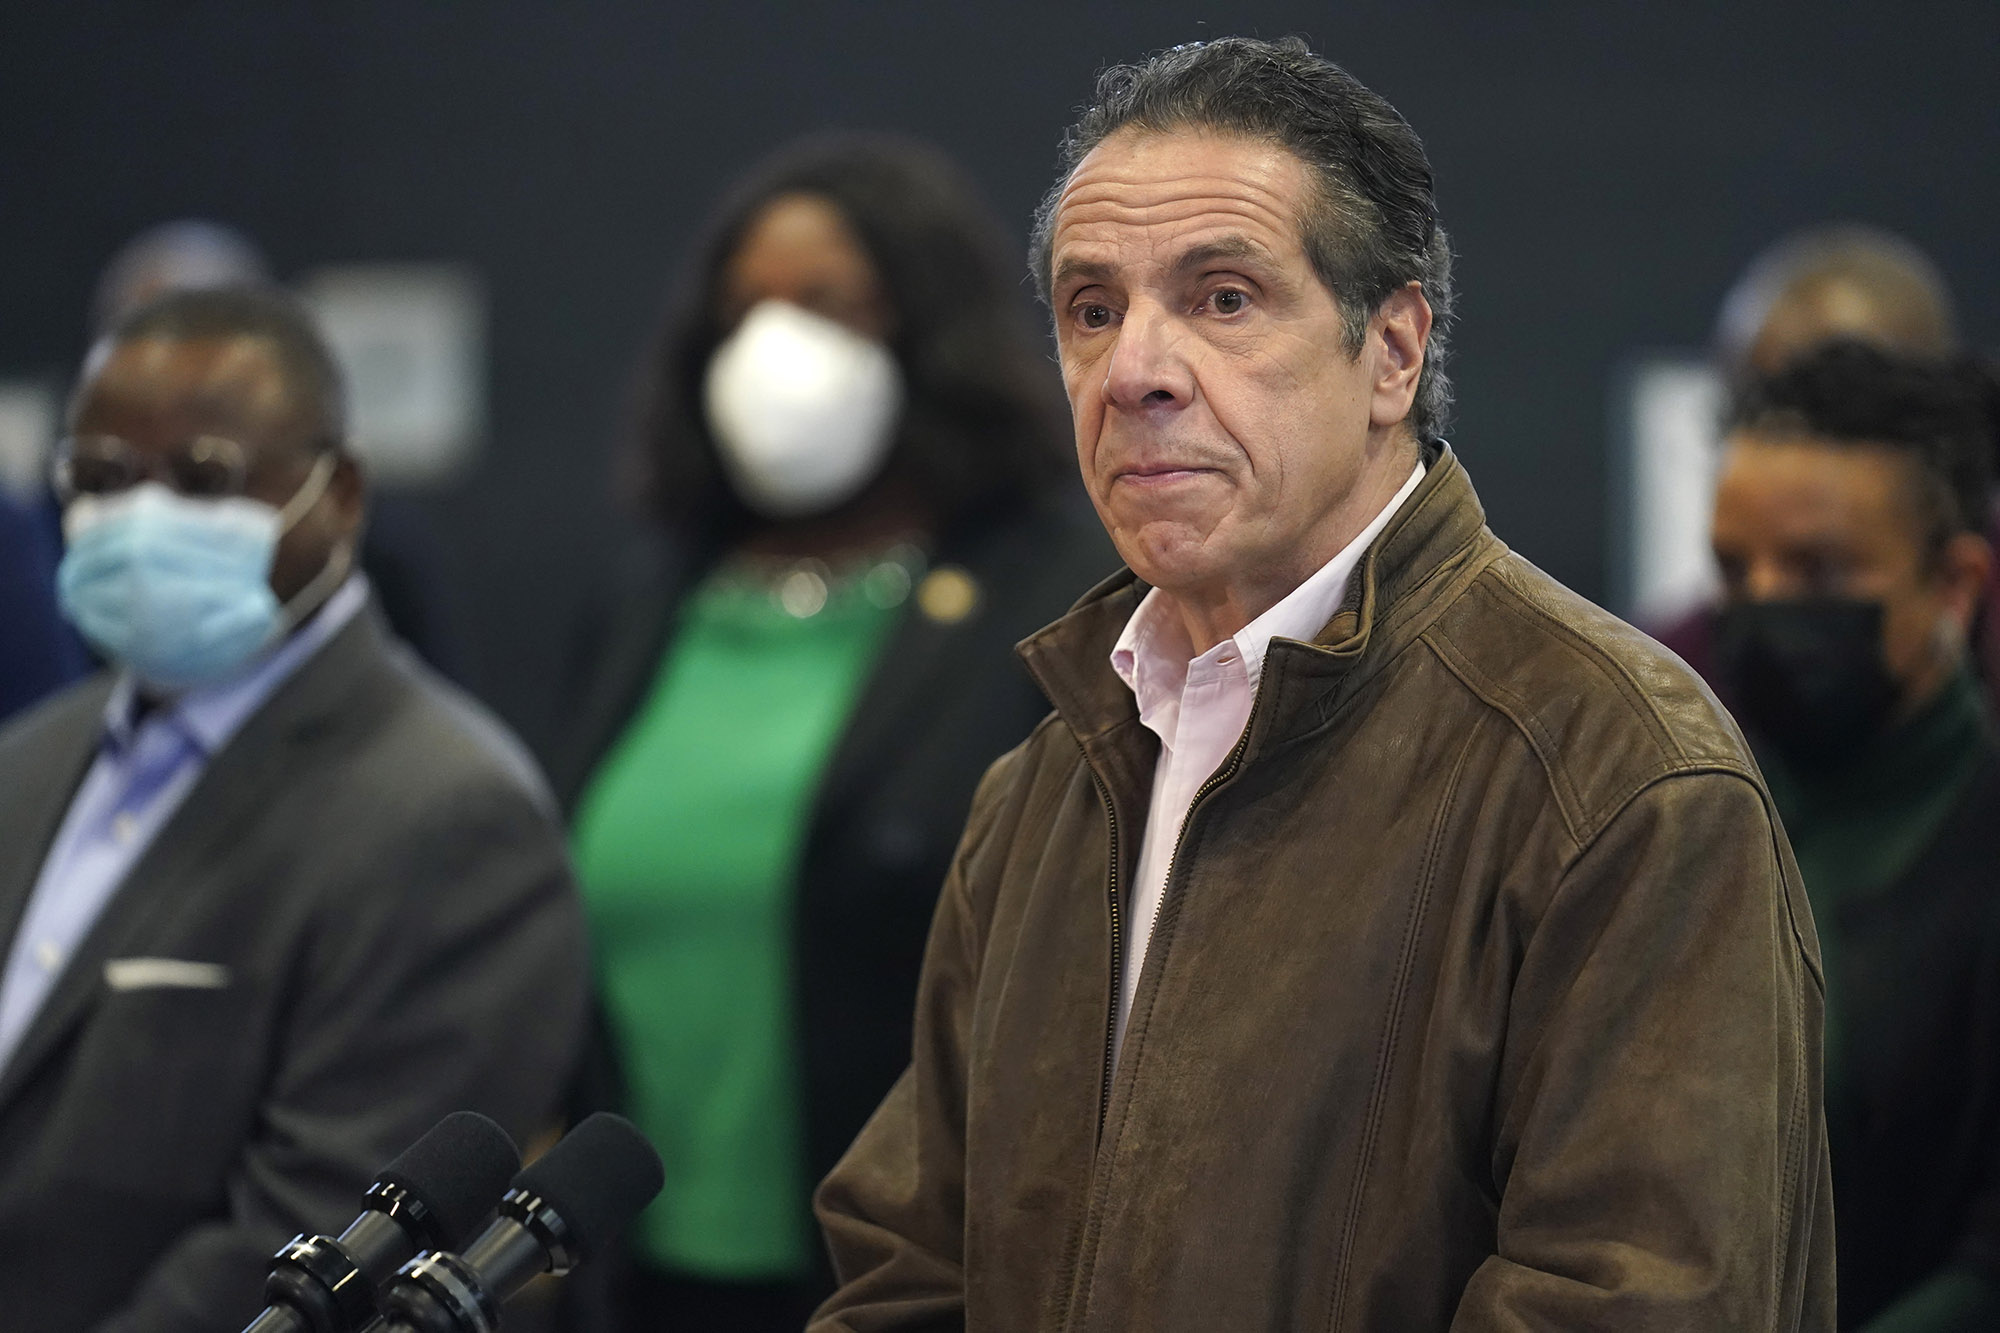 Cuomo changes plan and asks New York attorney general and chief judge to select independent lawyer to review sexual harassment claims